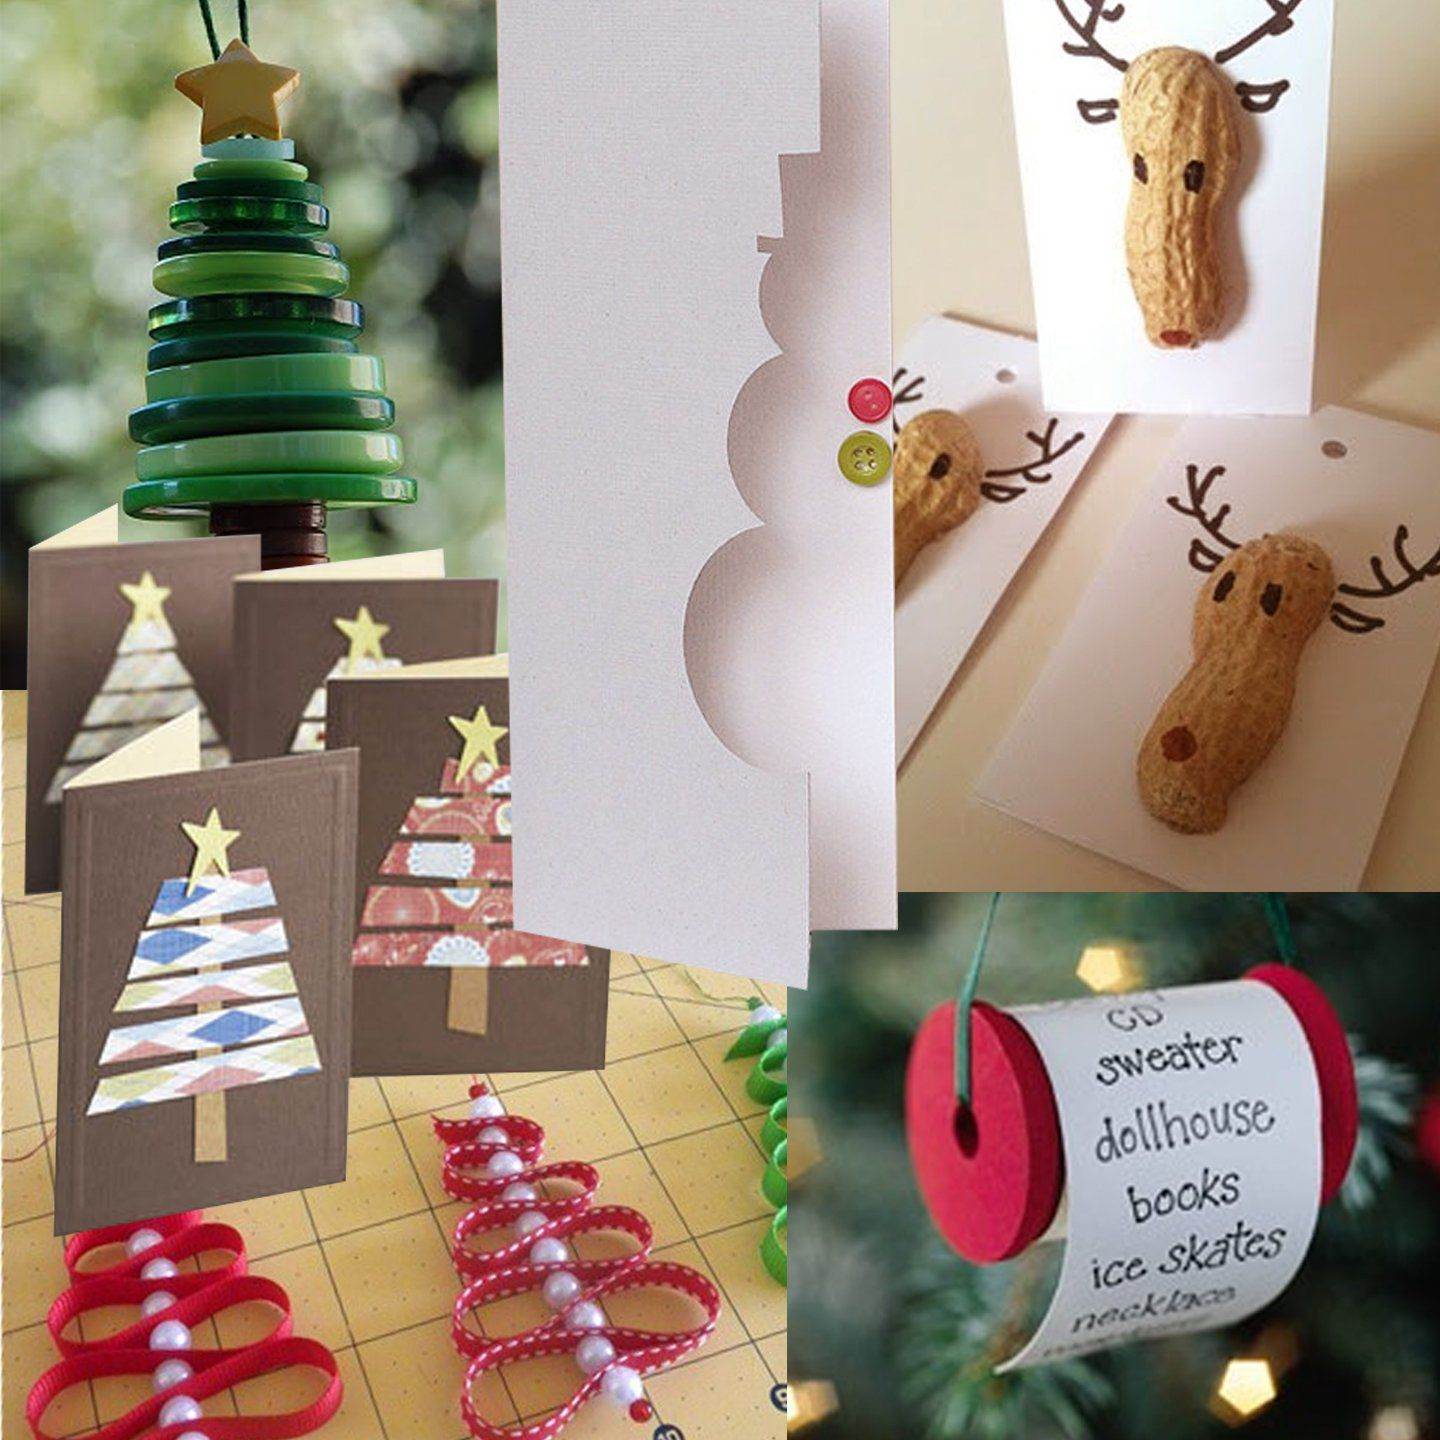 Christmas room ideas diy decorations xmas decorations for Easy to make christmas decorations at home